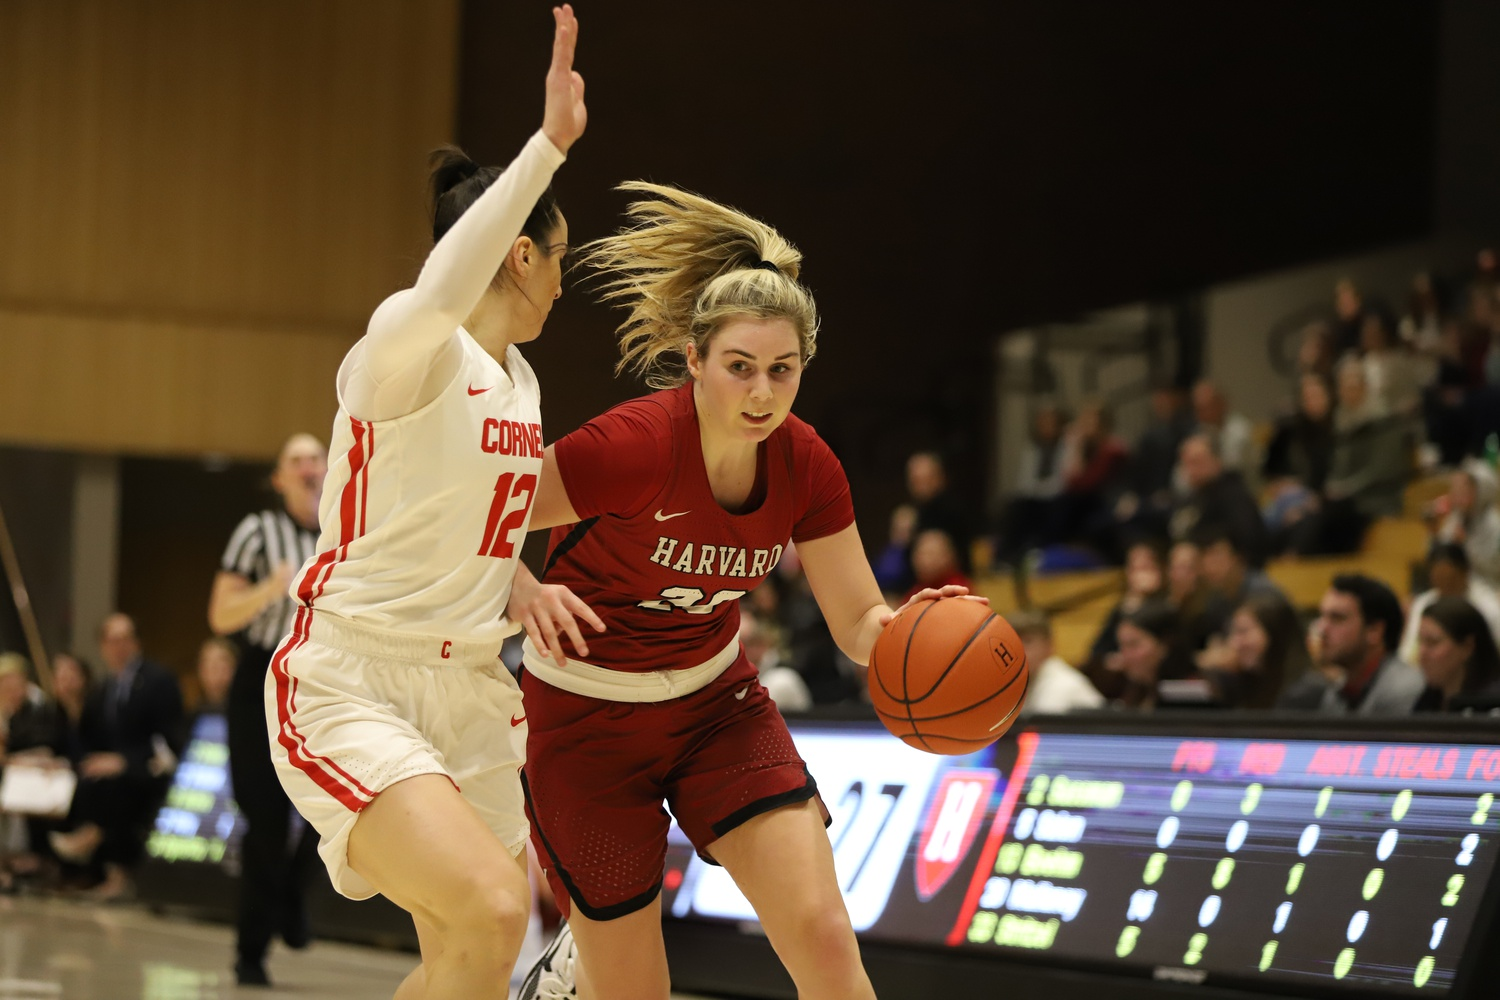 The Crimson fought until the last minute, but could not make up its deficit from a difficult first half.